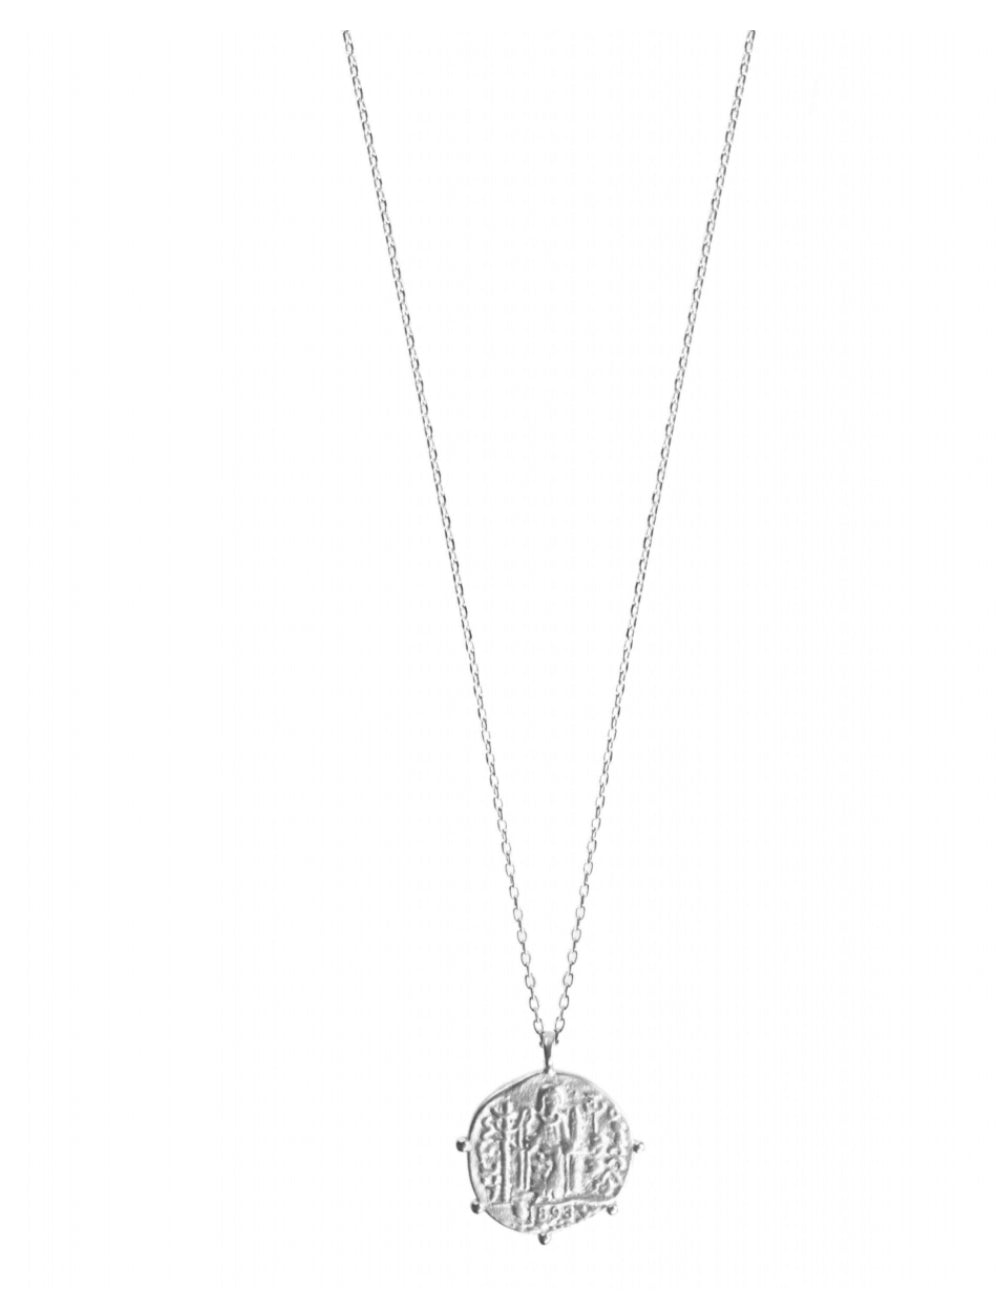 Lady Justice Necklace in Silver by Hultquist